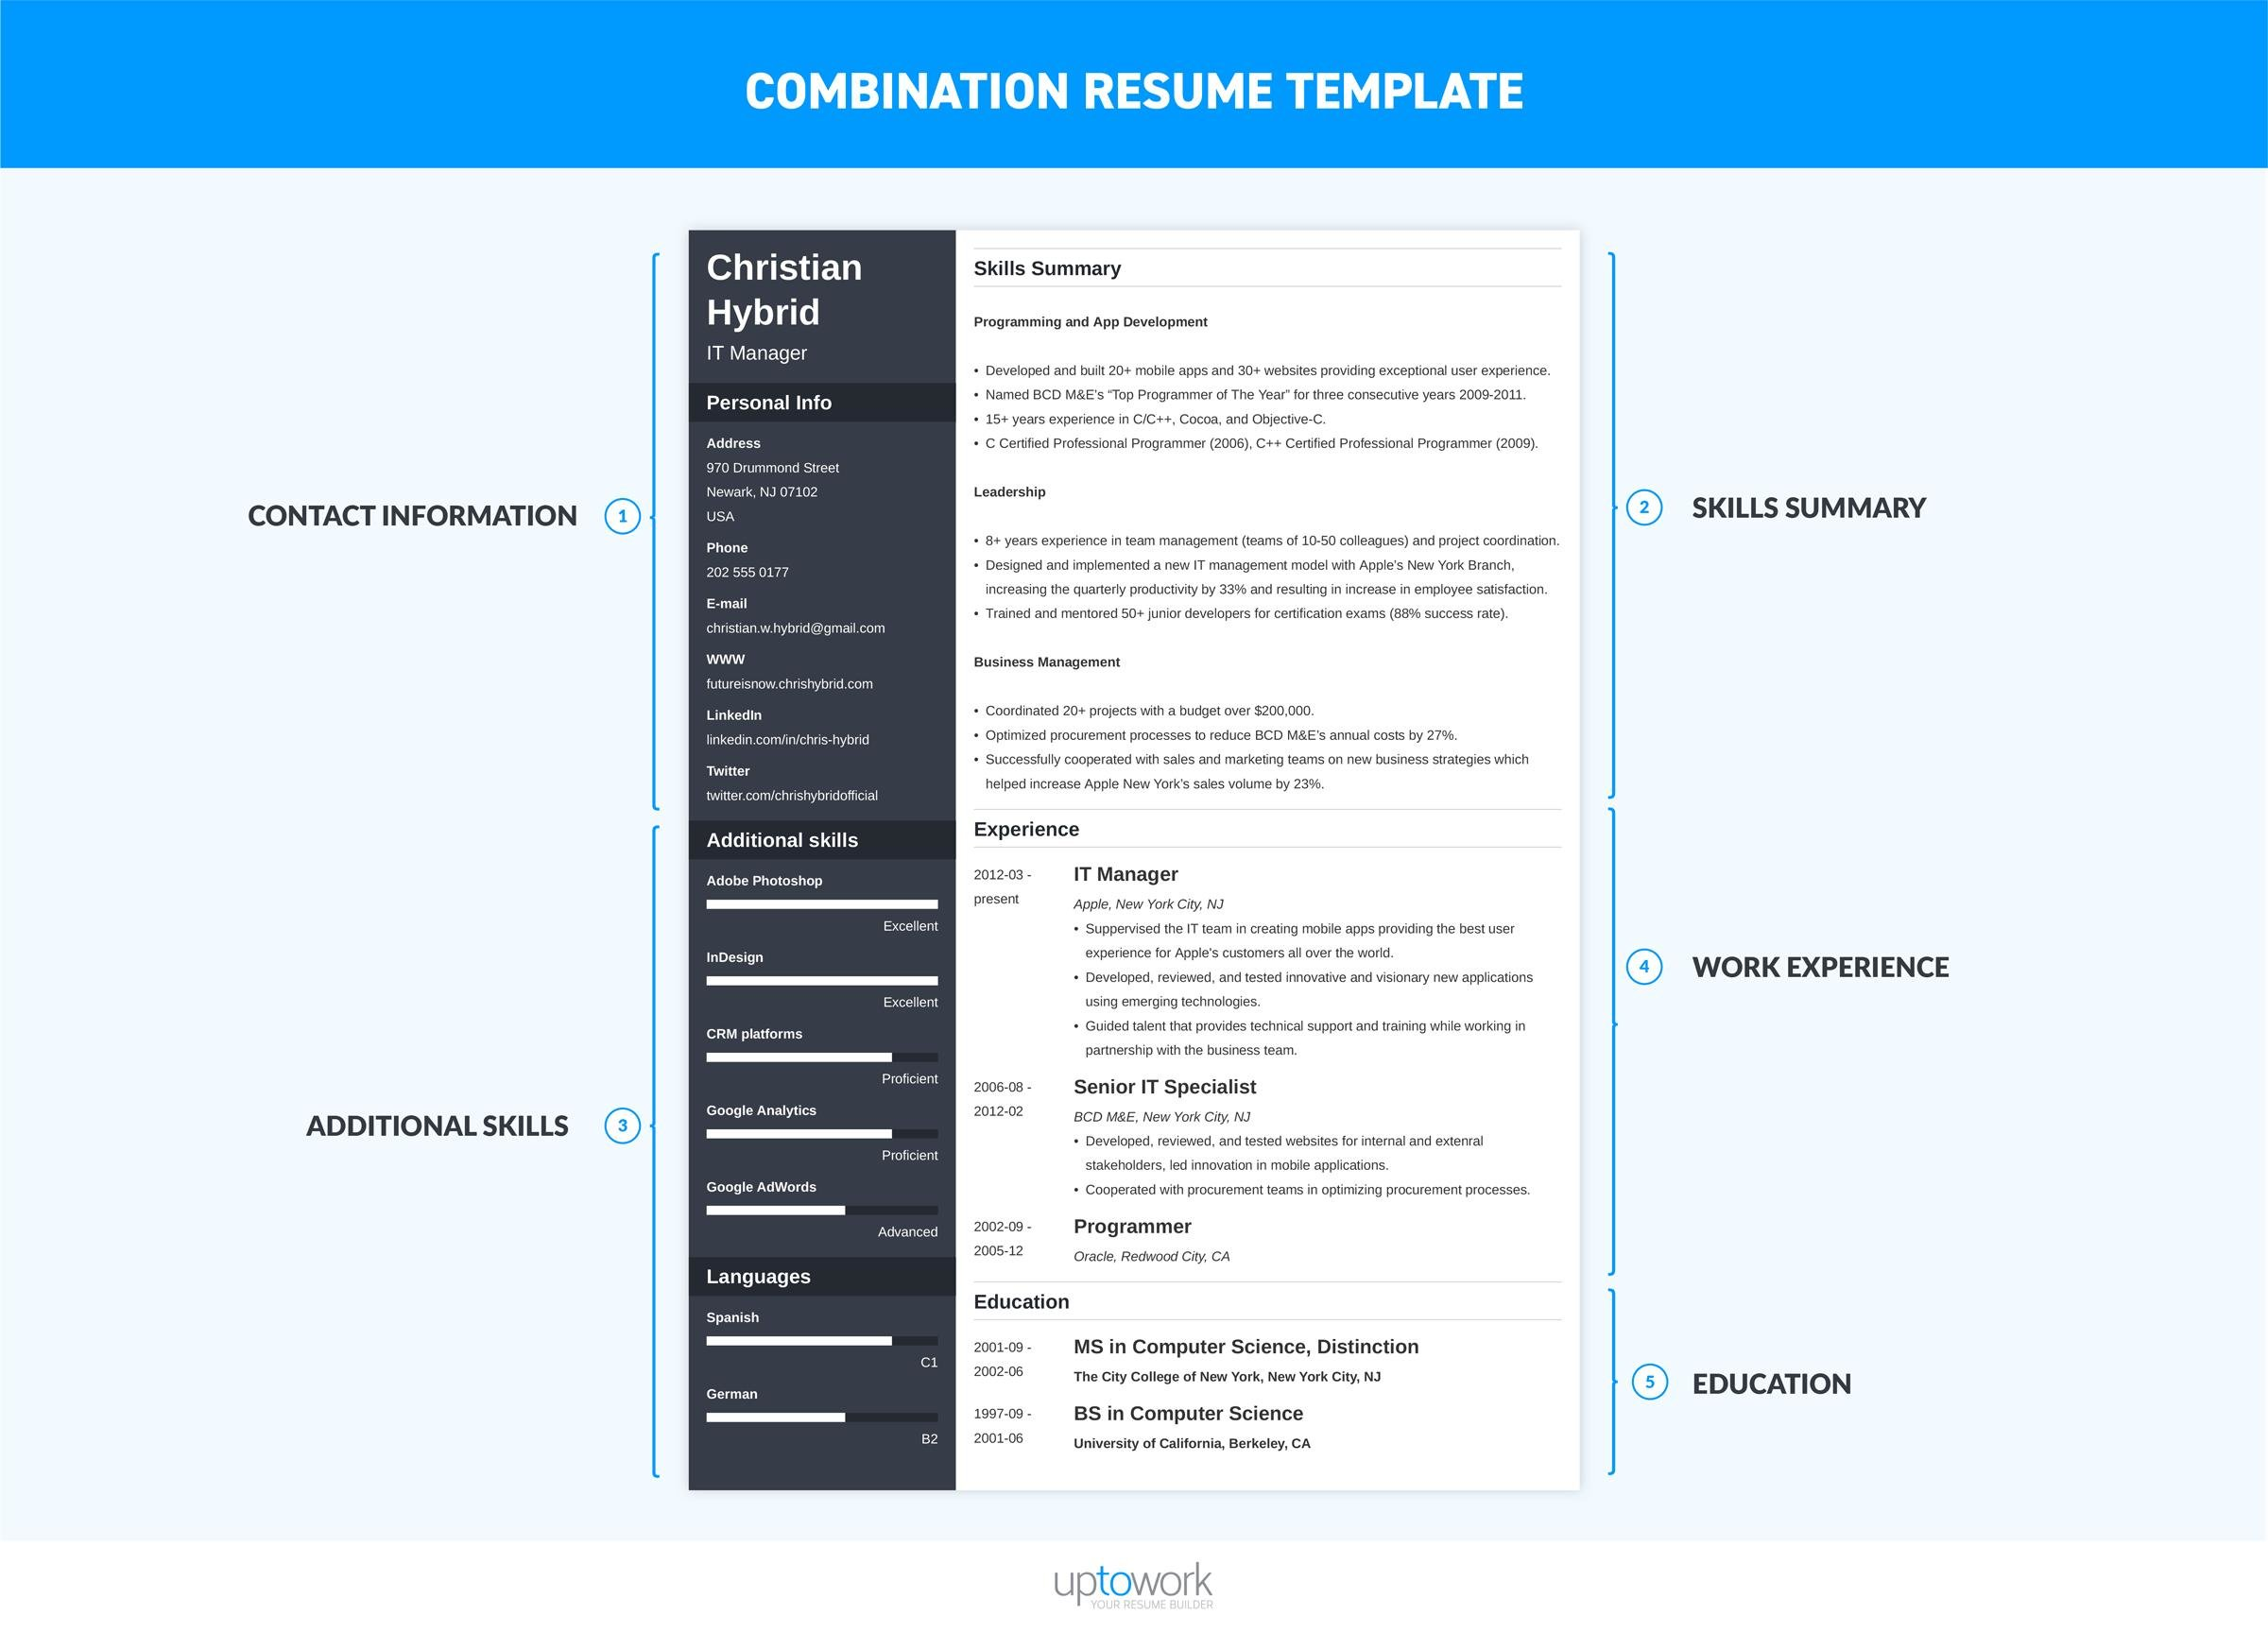 Nice How To Write An Effective Combination Resume And What Sections To Include